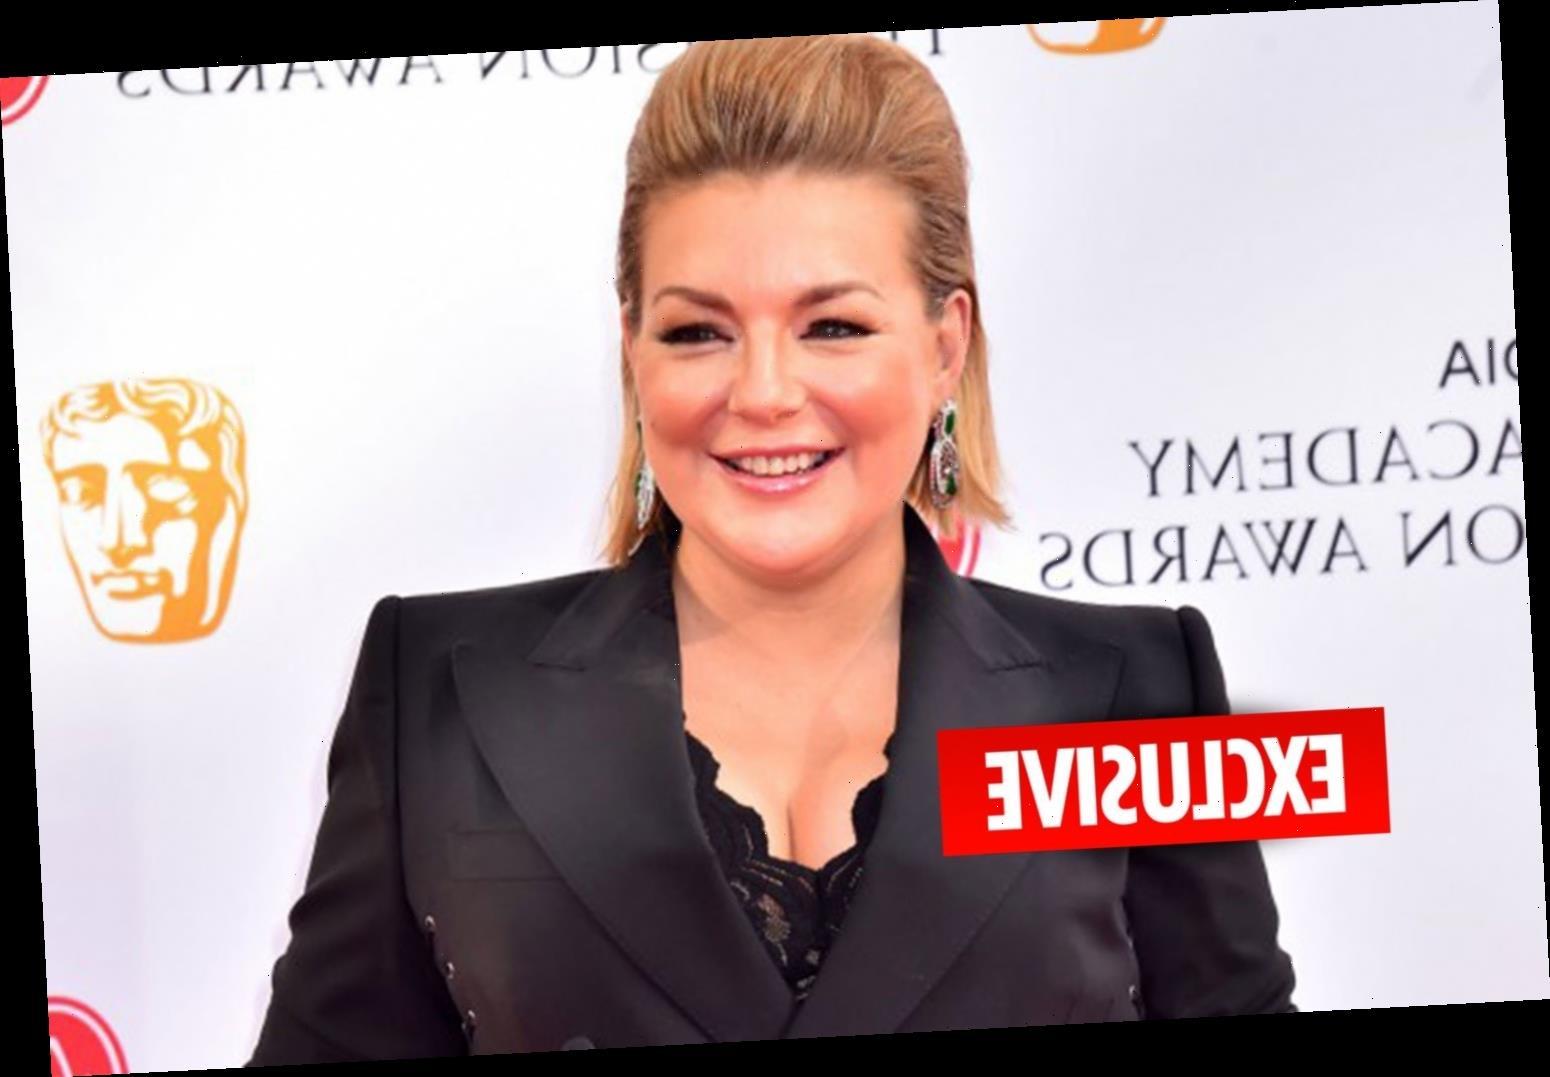 Sheridan Smith working on tell-all autobiography in which she vows to open up about her career highs & personal lows